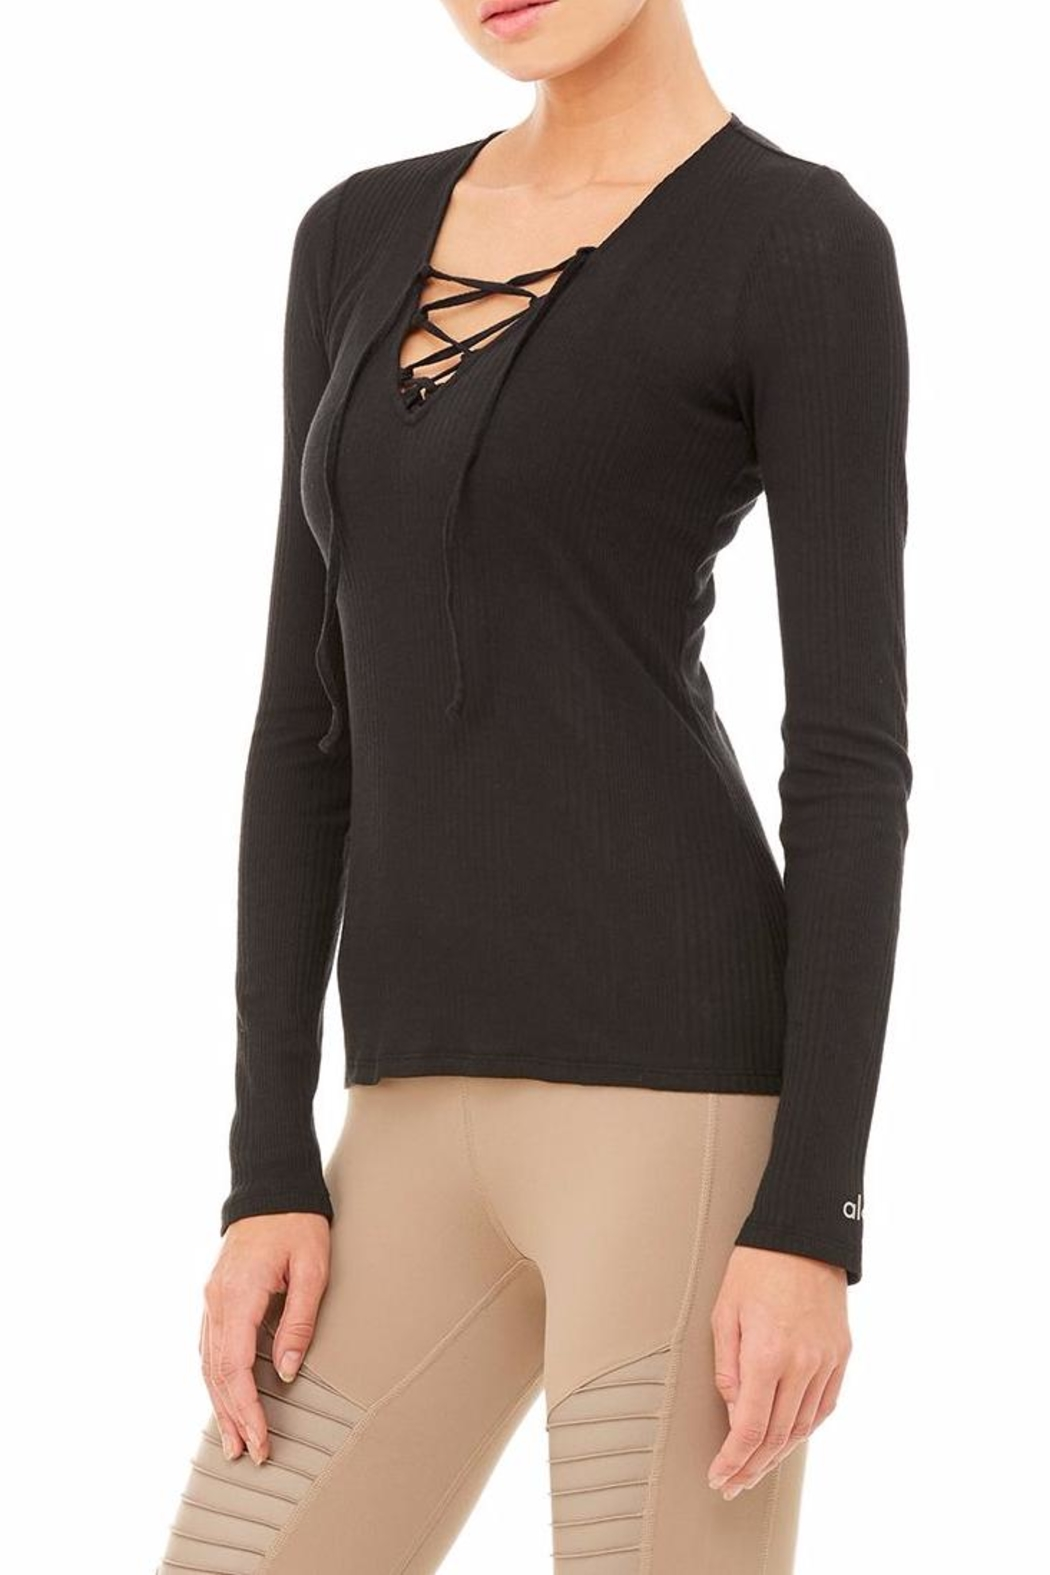 ALO Yoga Interlace Long Sleeve Top - Front Full Image